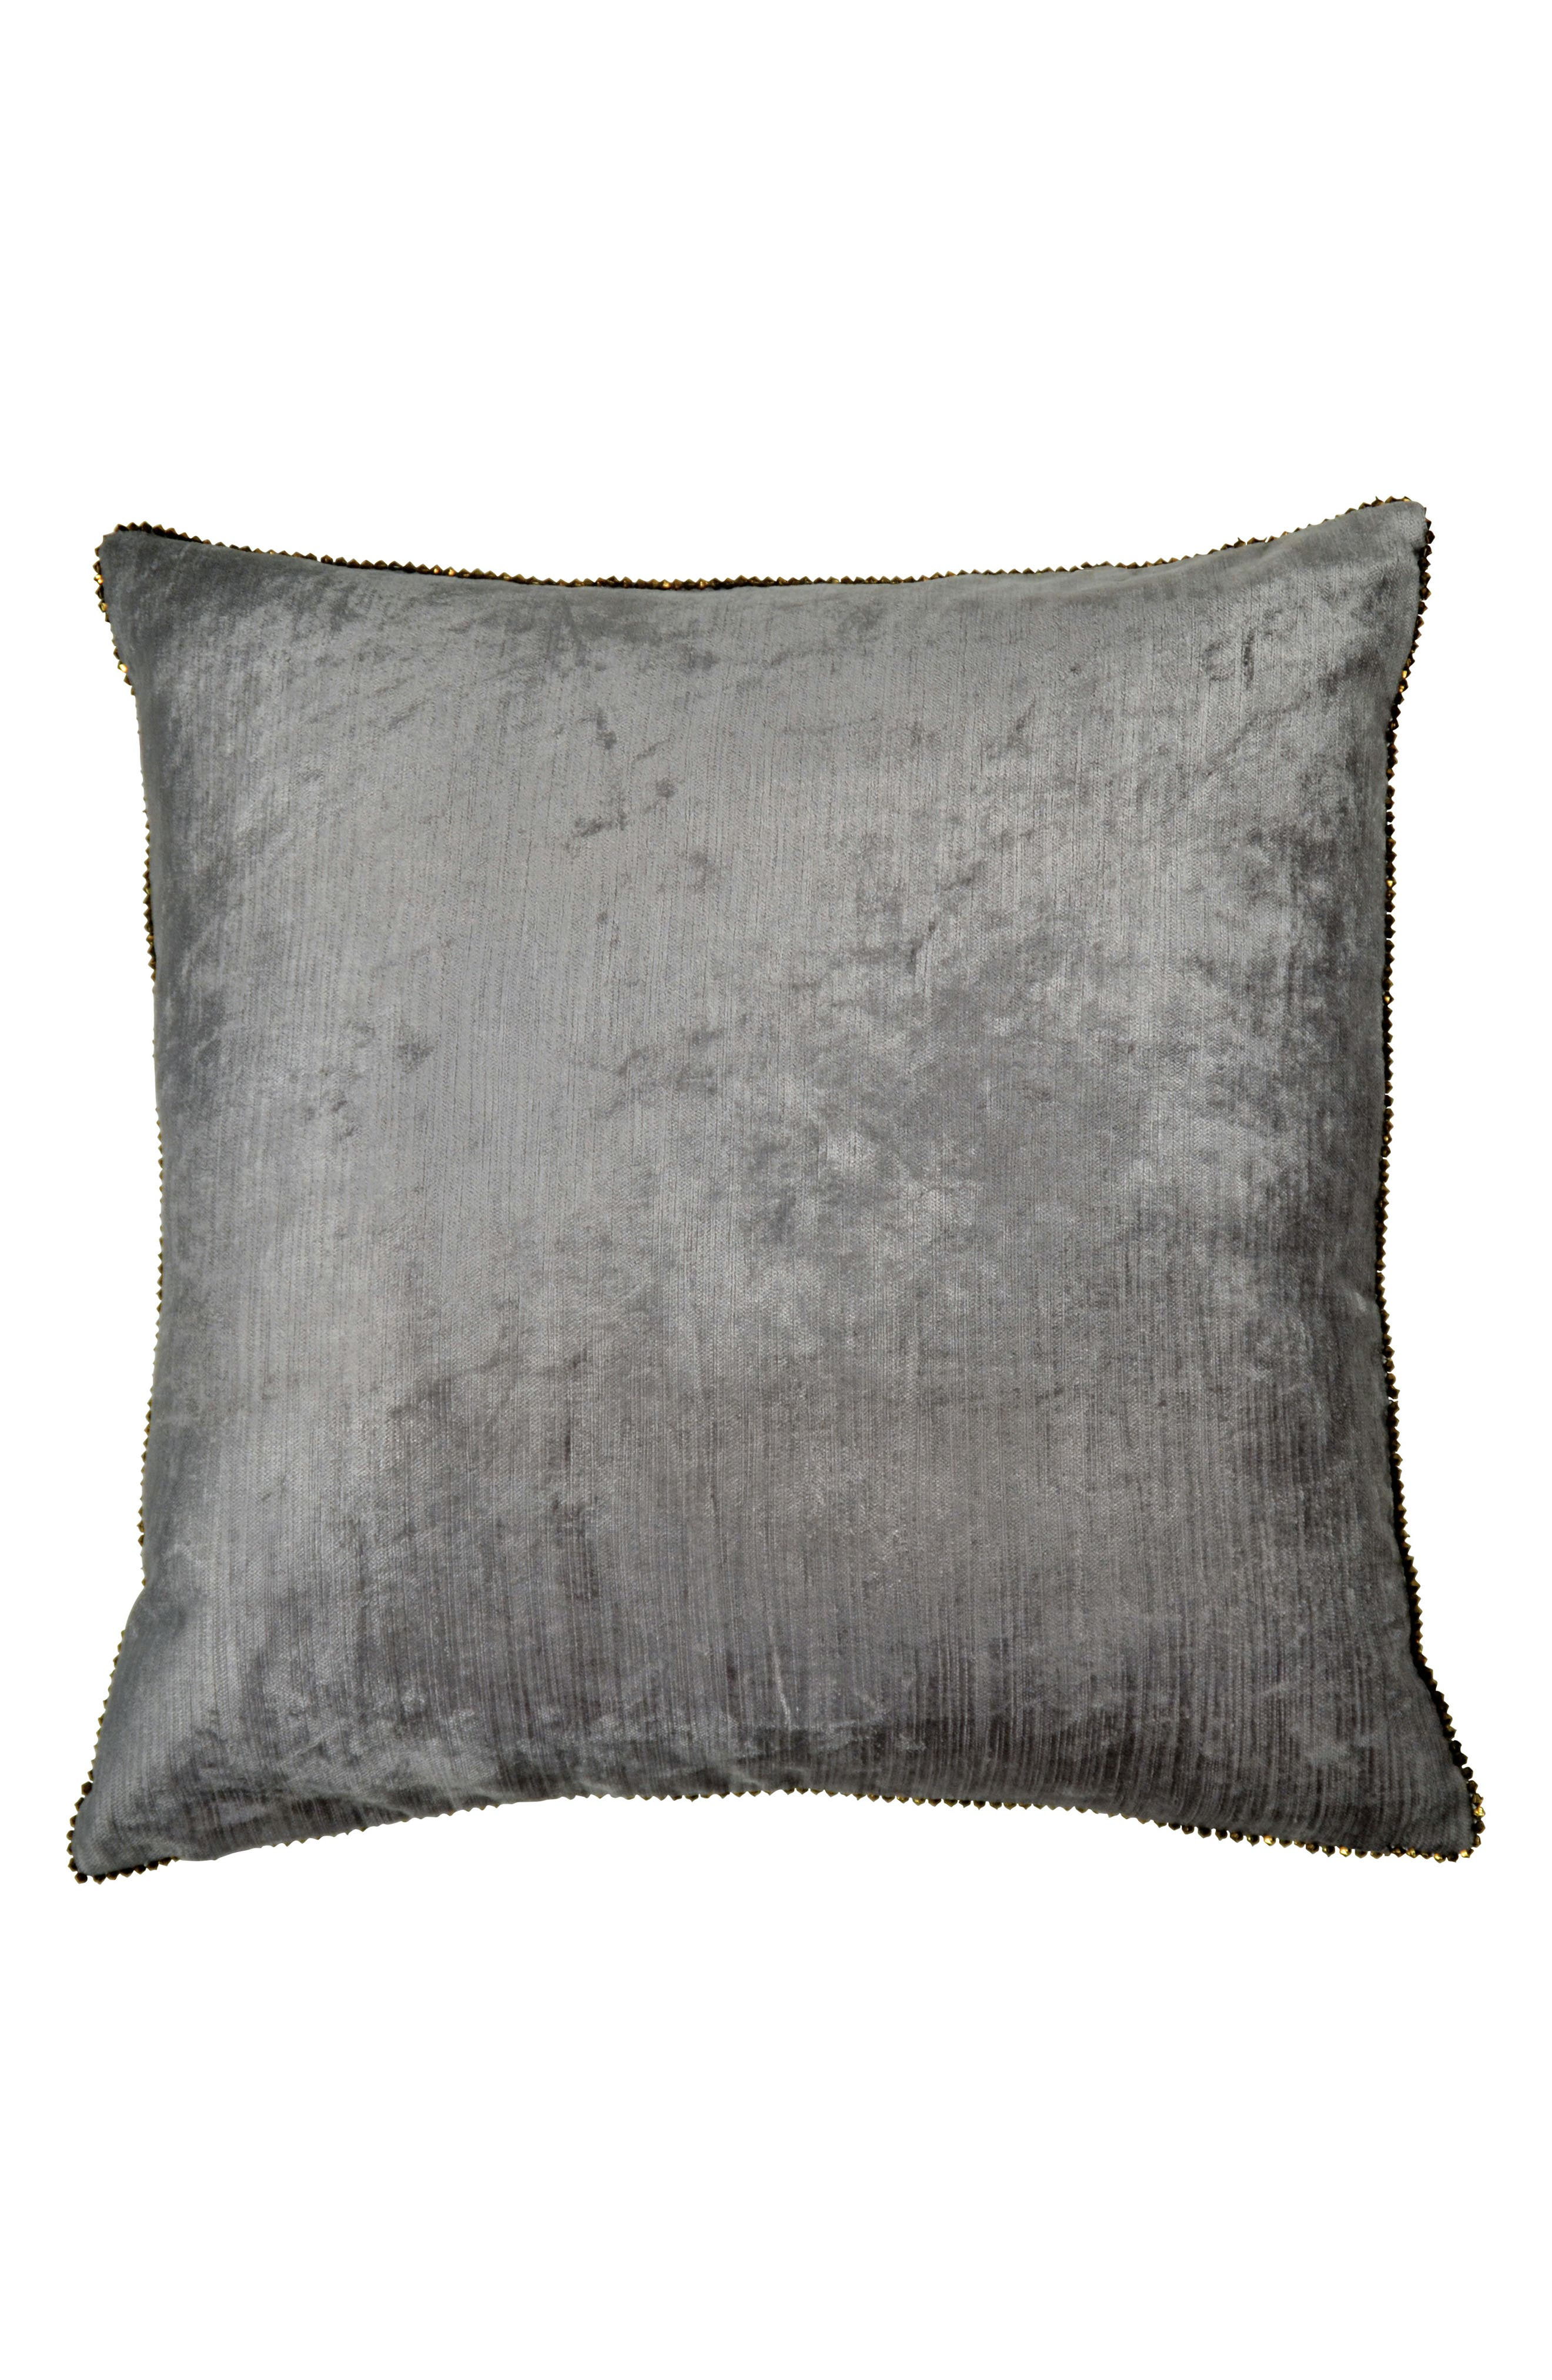 Velvet Accent Pillow,                         Main,                         color, GREY